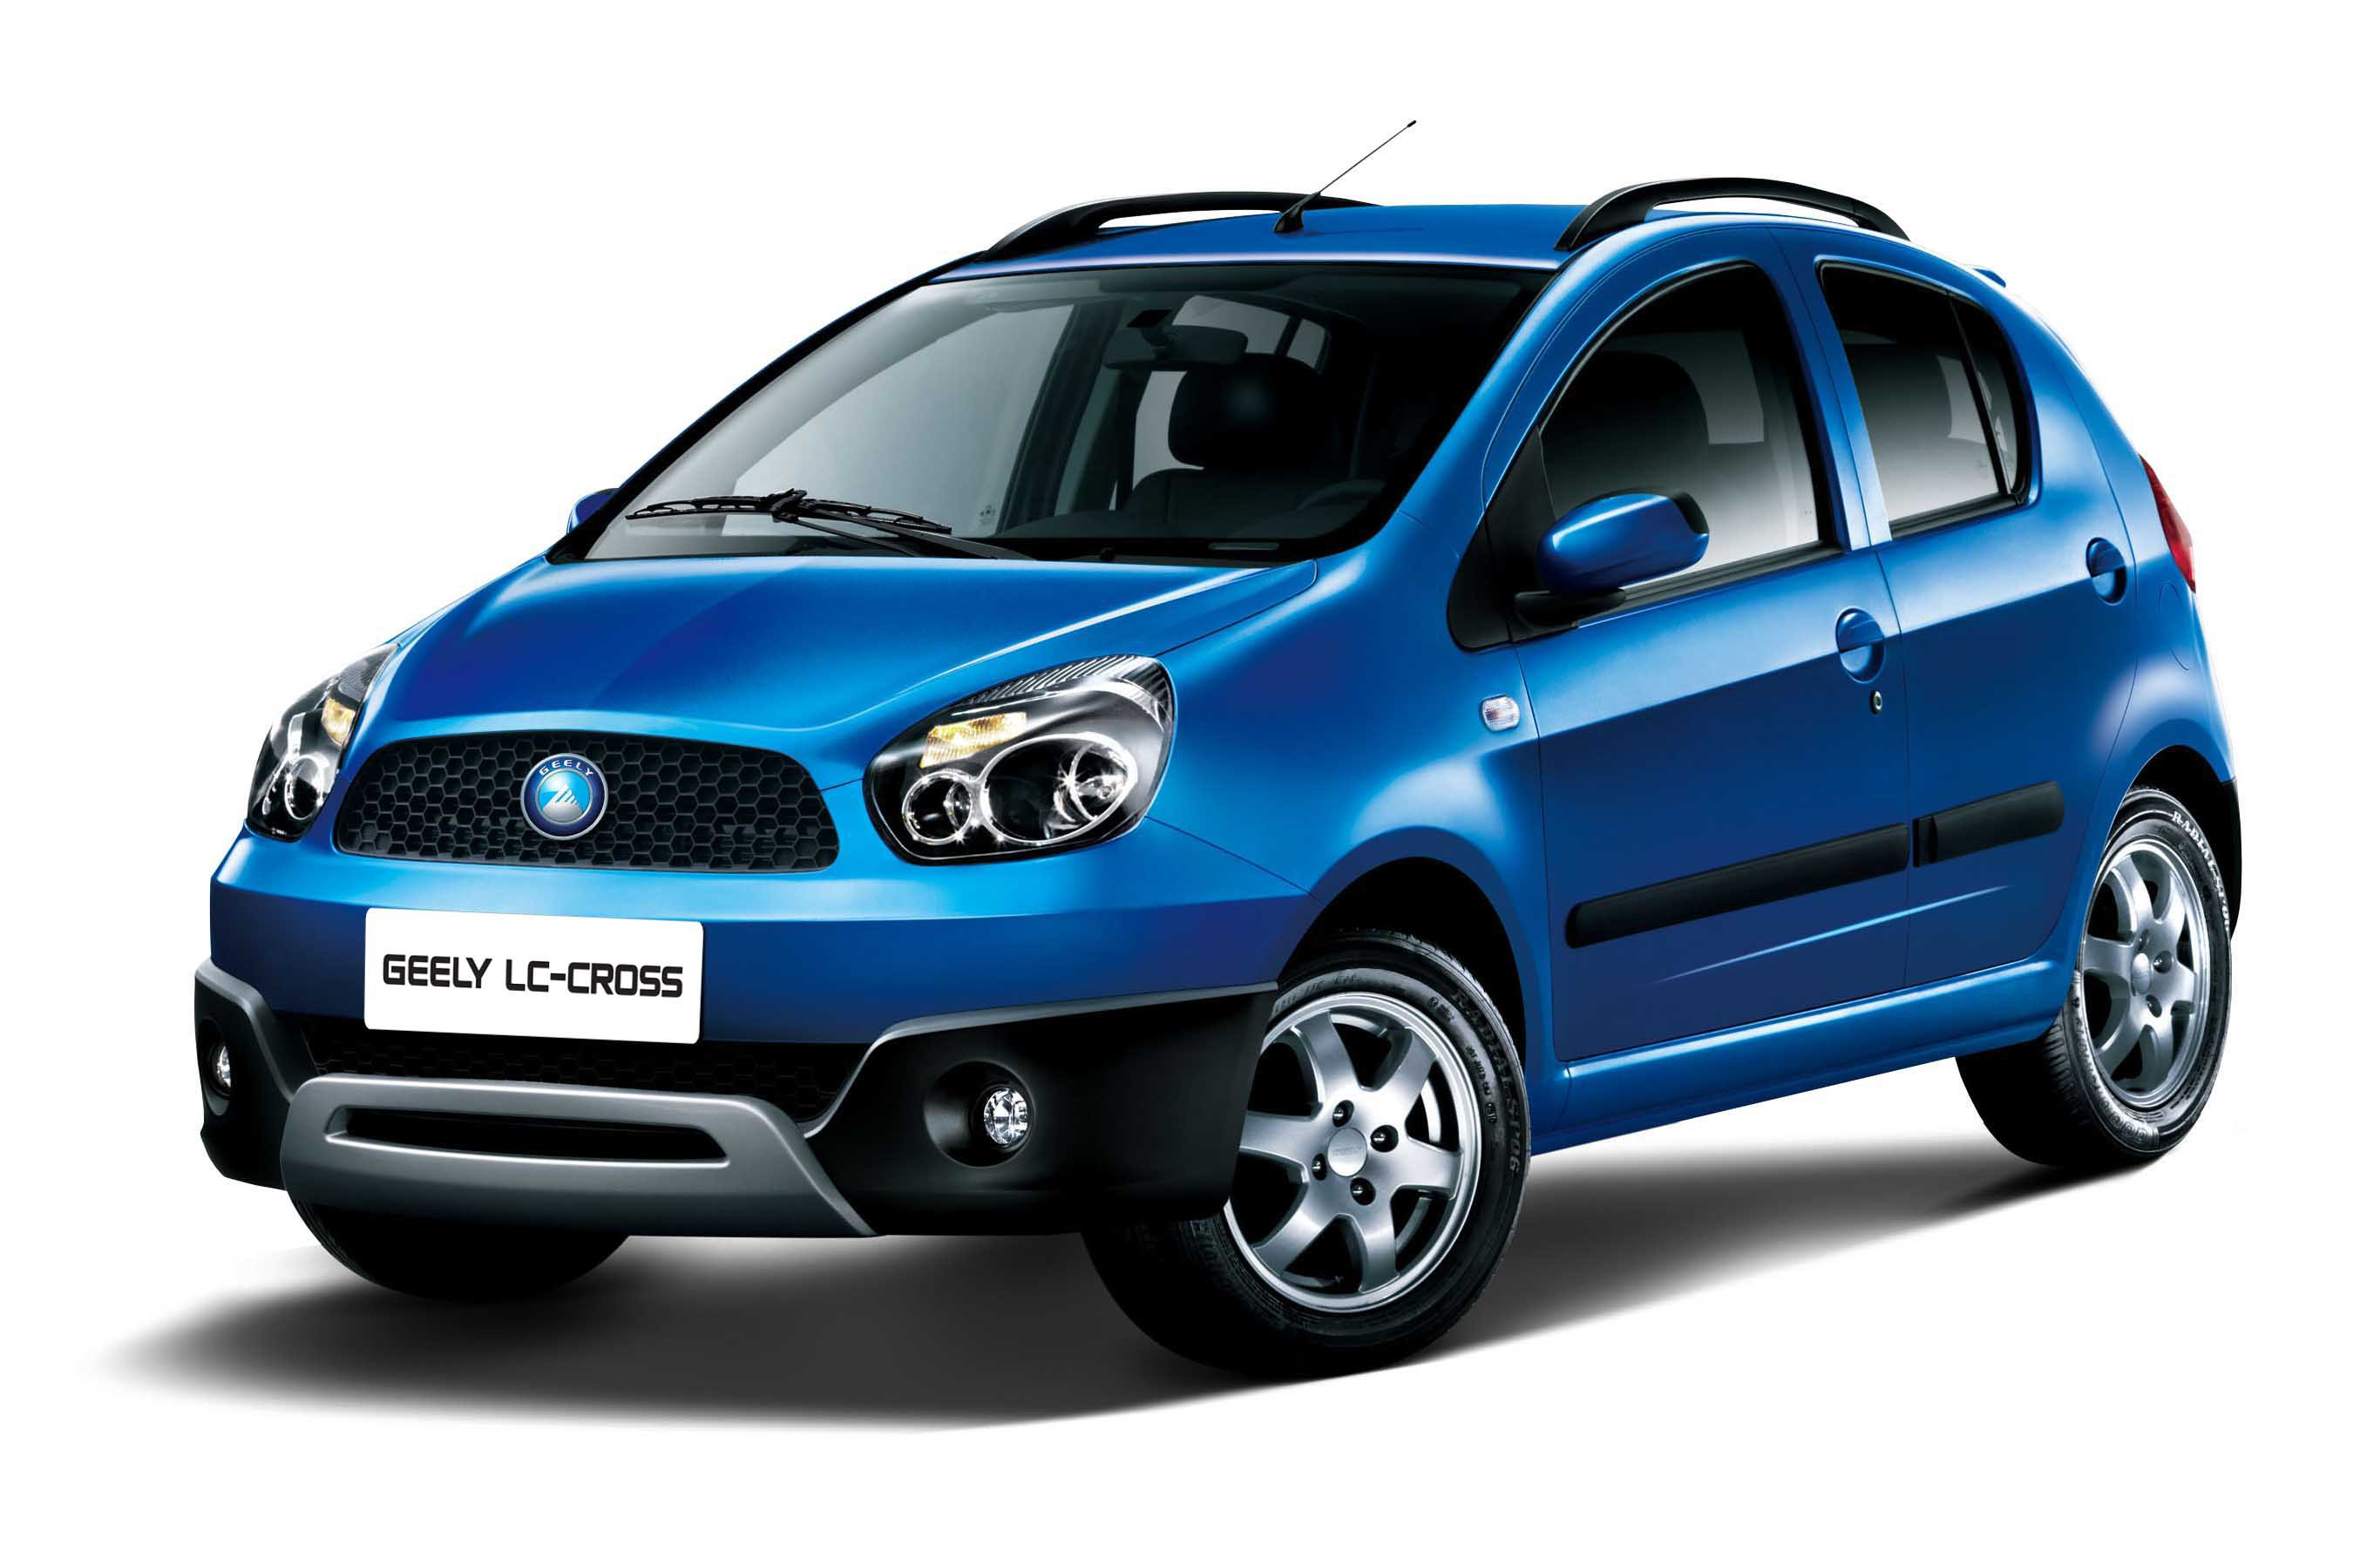 geely lc-cross seriess #1